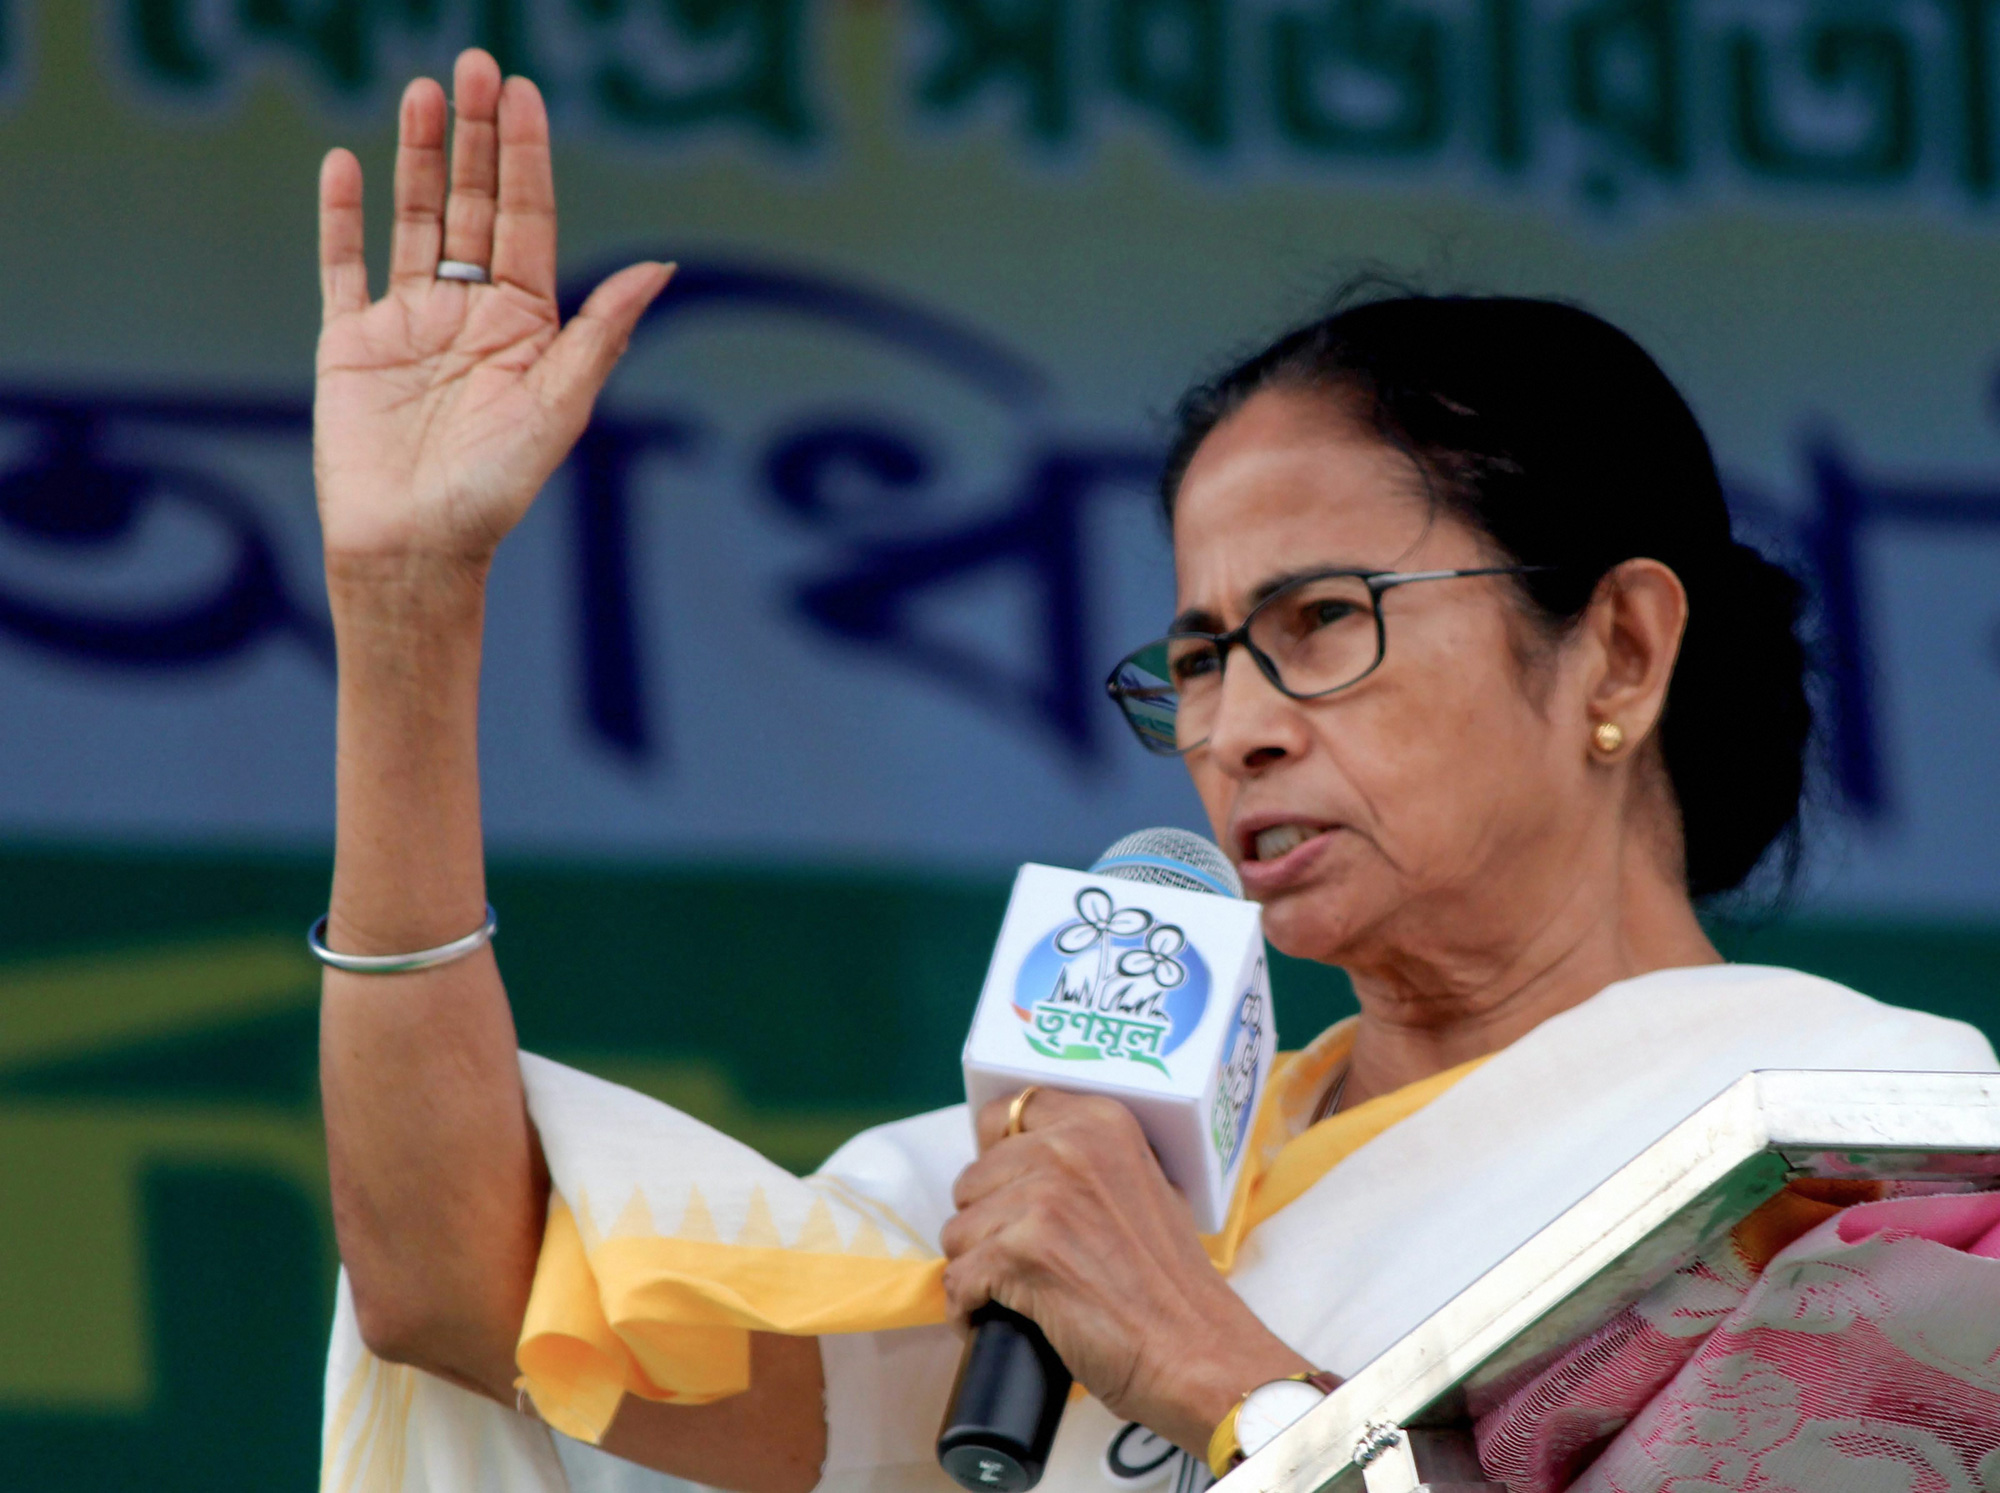 Mamata Banerjee's party seems to have a finger on the pulse of Bengal. Supporters of a TMC candidate reportedly distributed 'nakuldana', sweet tidbits that are integral to the 'prasad' offered to deities